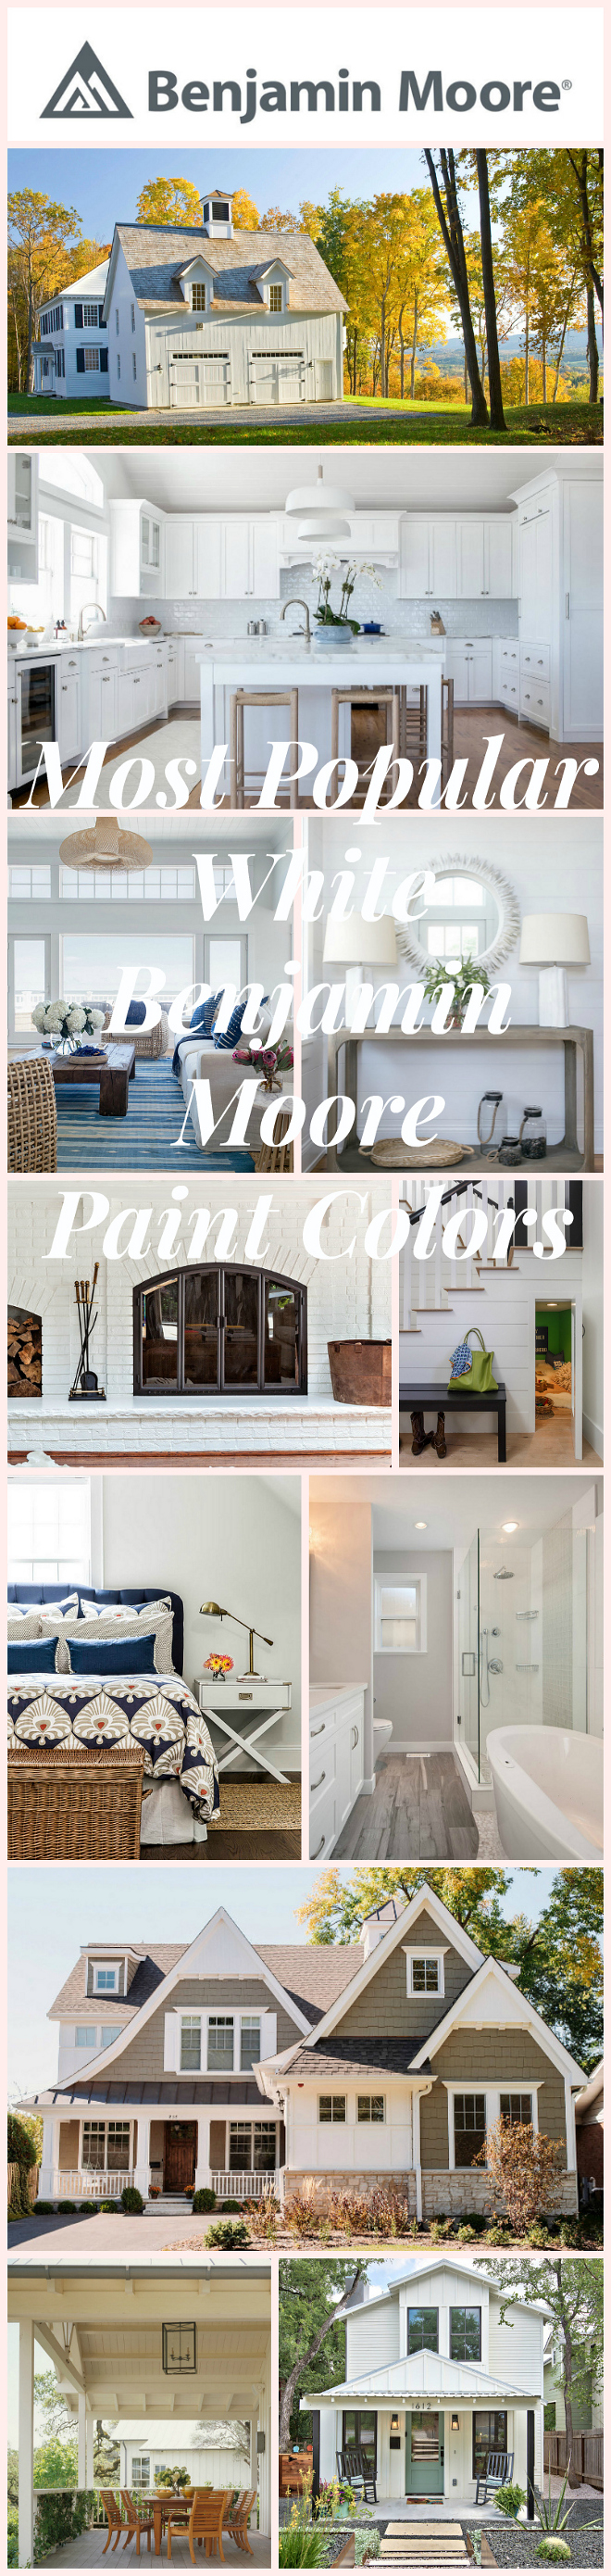 Open concept family home design ideas home bunch - Most popular benjamin moore exterior paint colors concept ...